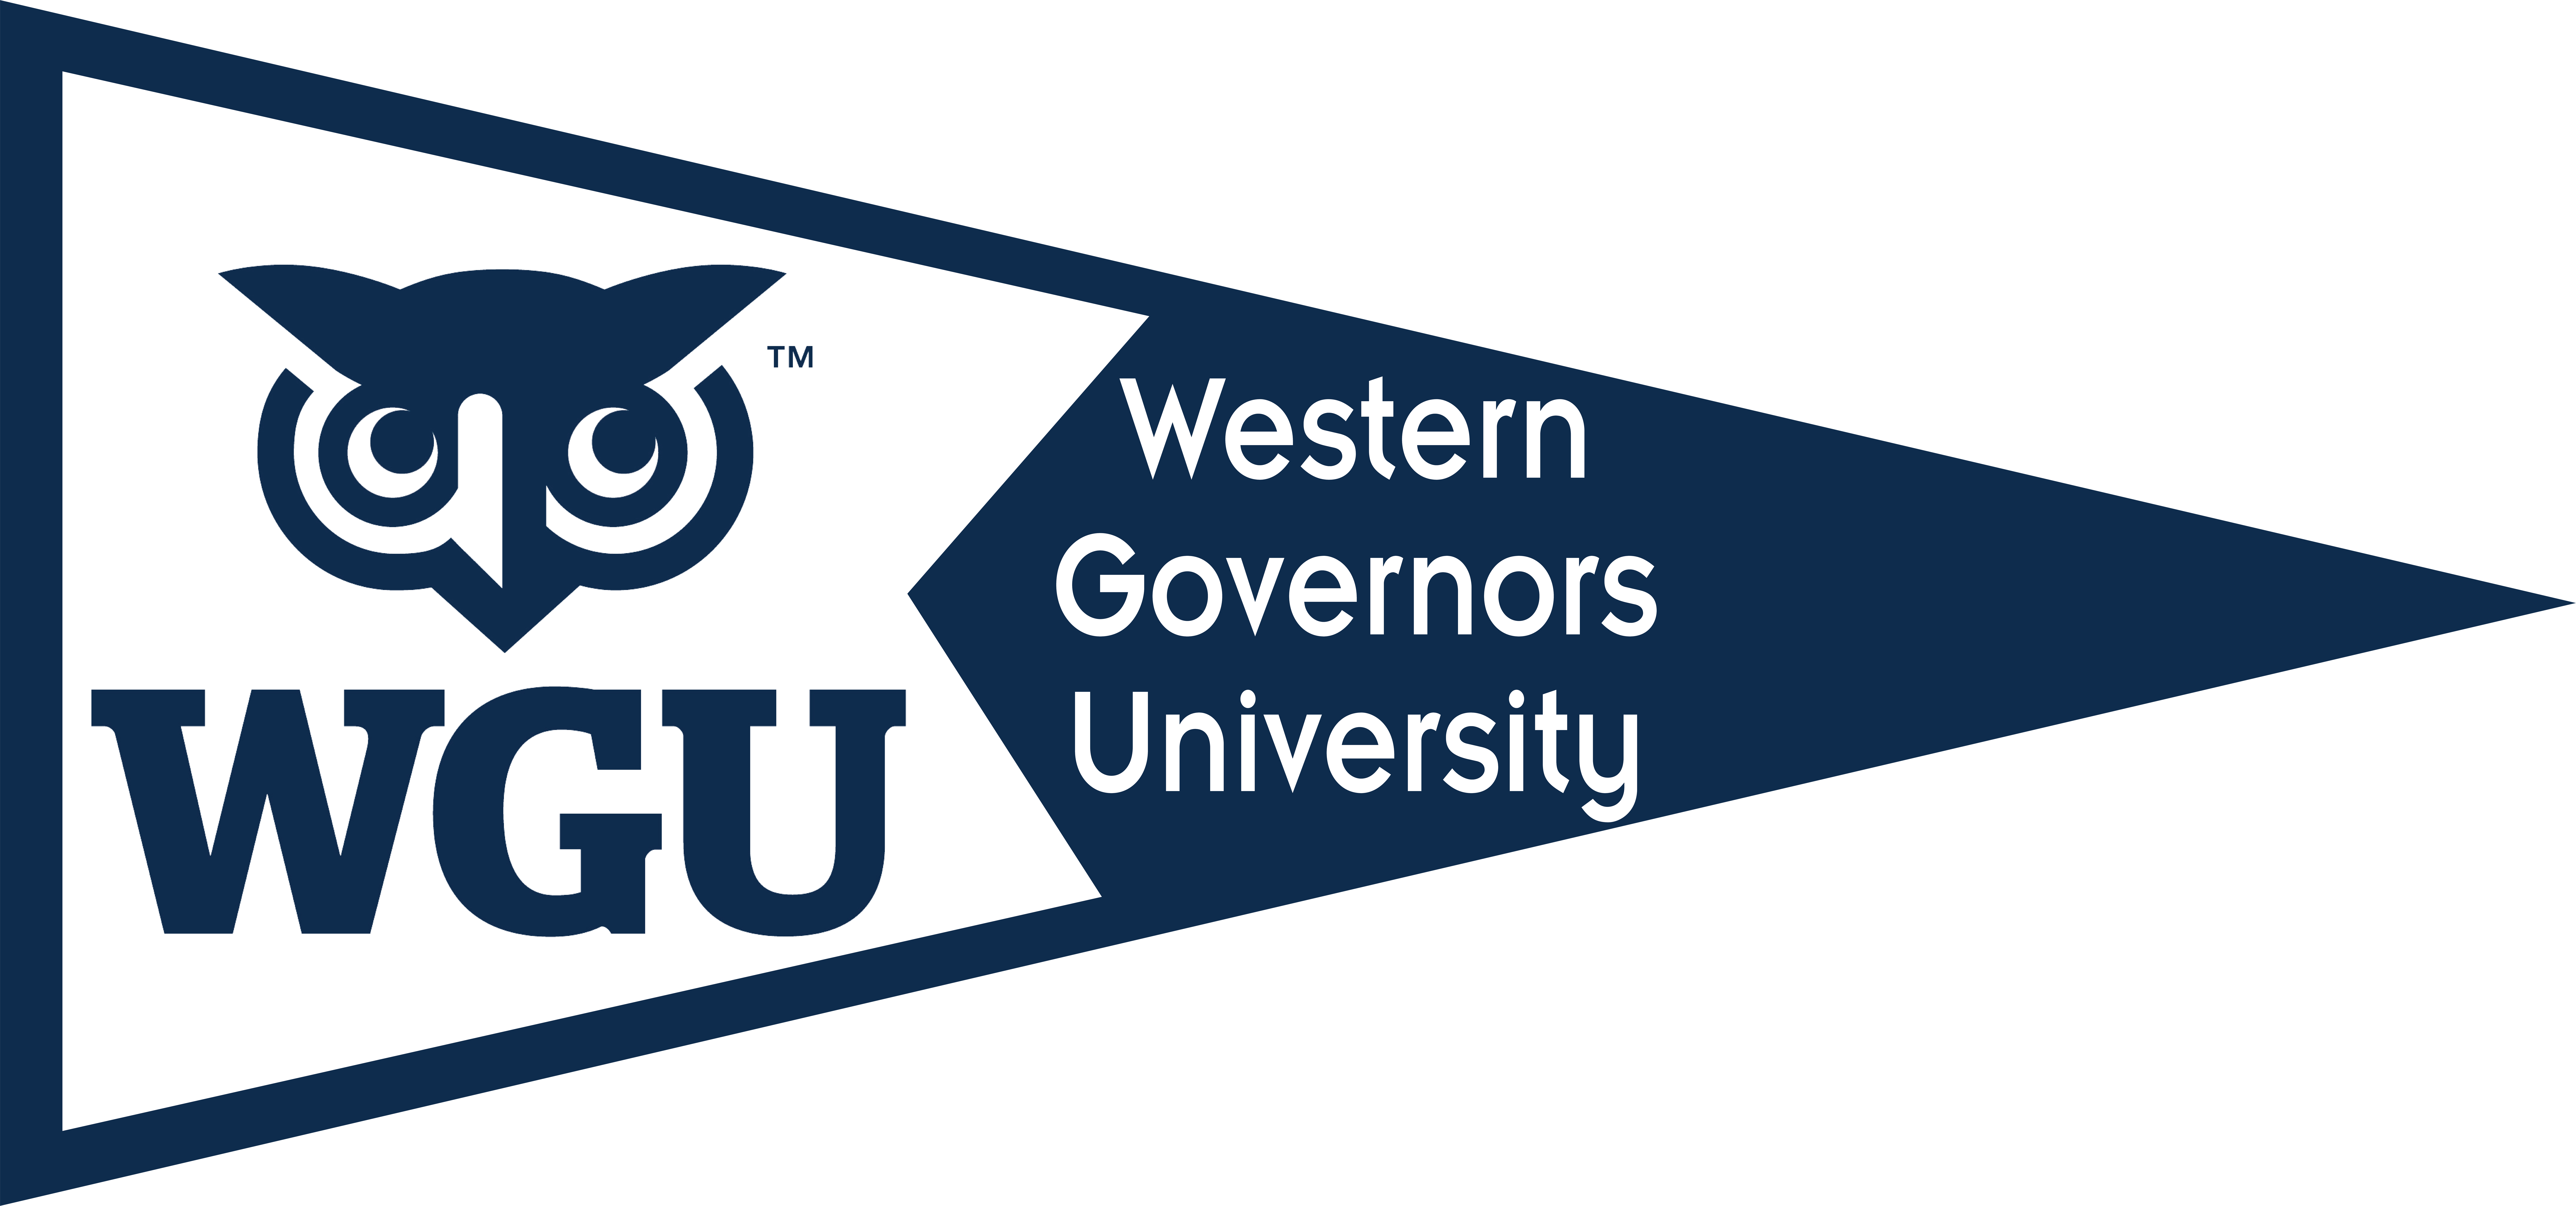 Western Governors University Pennant   GEAR UP